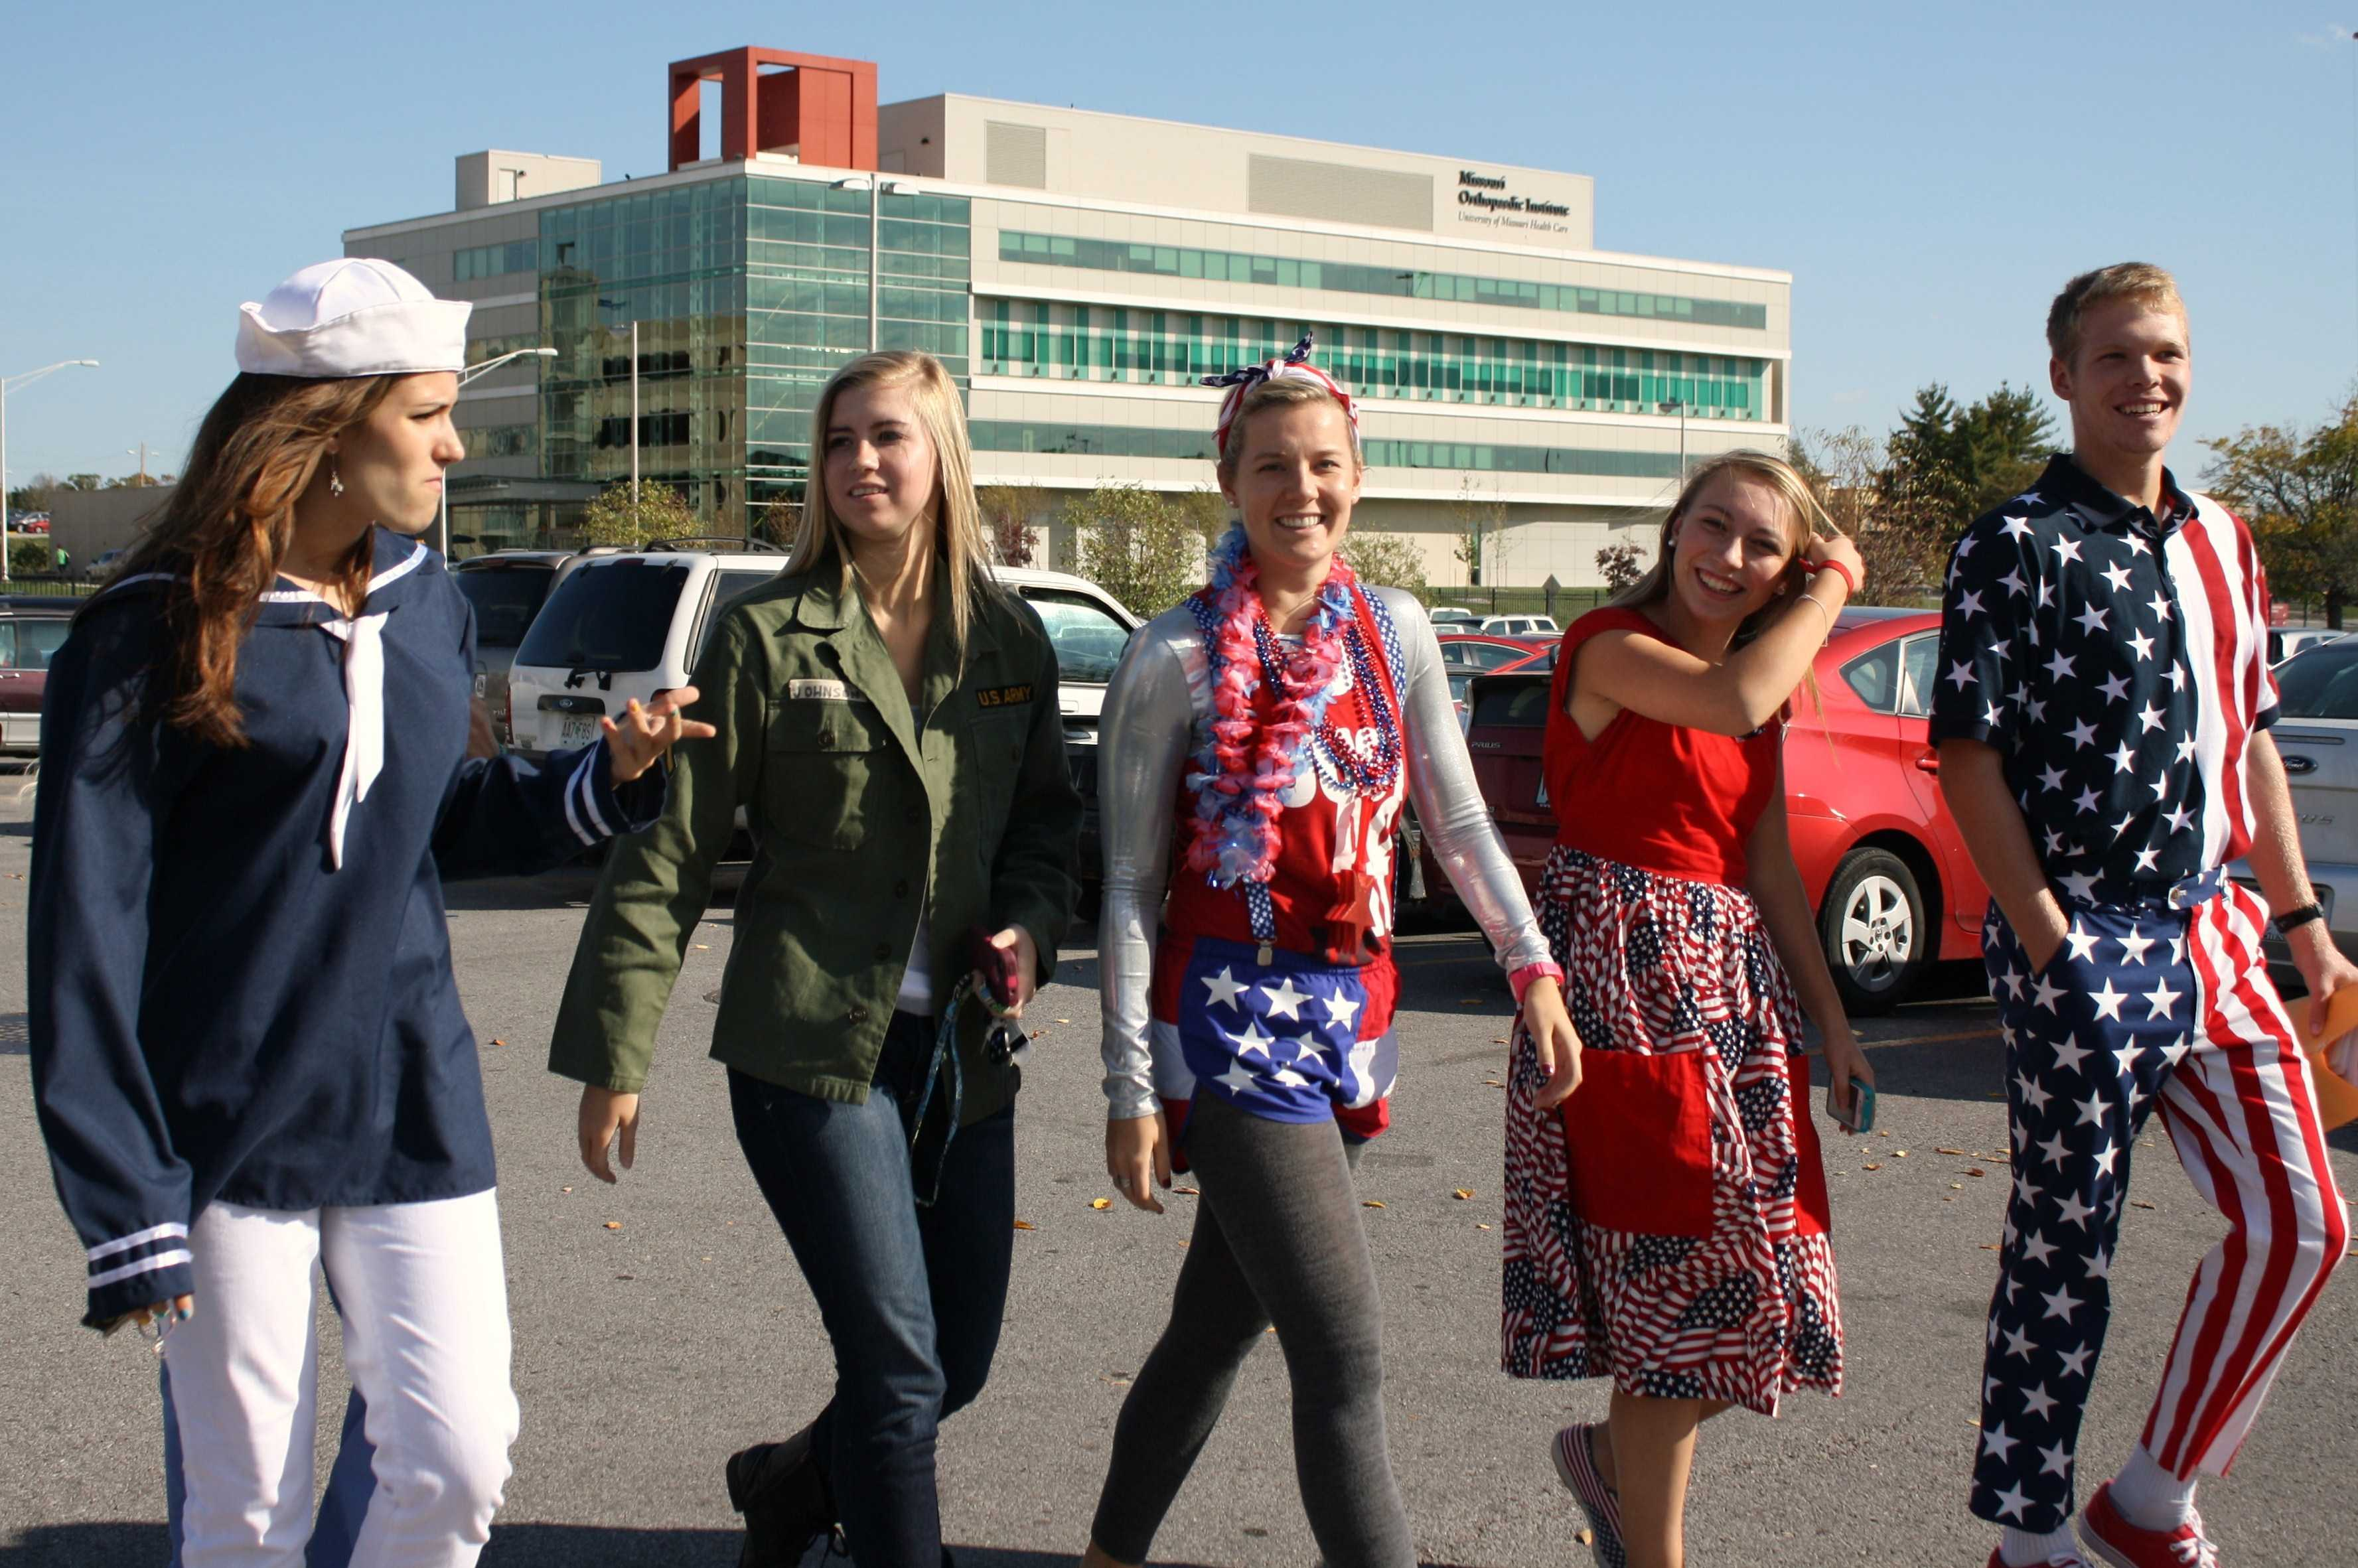 Homecoming candidates Morgan Widhalm (far left), Sydney Strong (left center), Taylor Wilson (center), Annie Rumpf (center right), and homecoming escort Alex Jones (far right) head into the Veterans' Hospital, bringing their vibrant colors and patriotism with them.